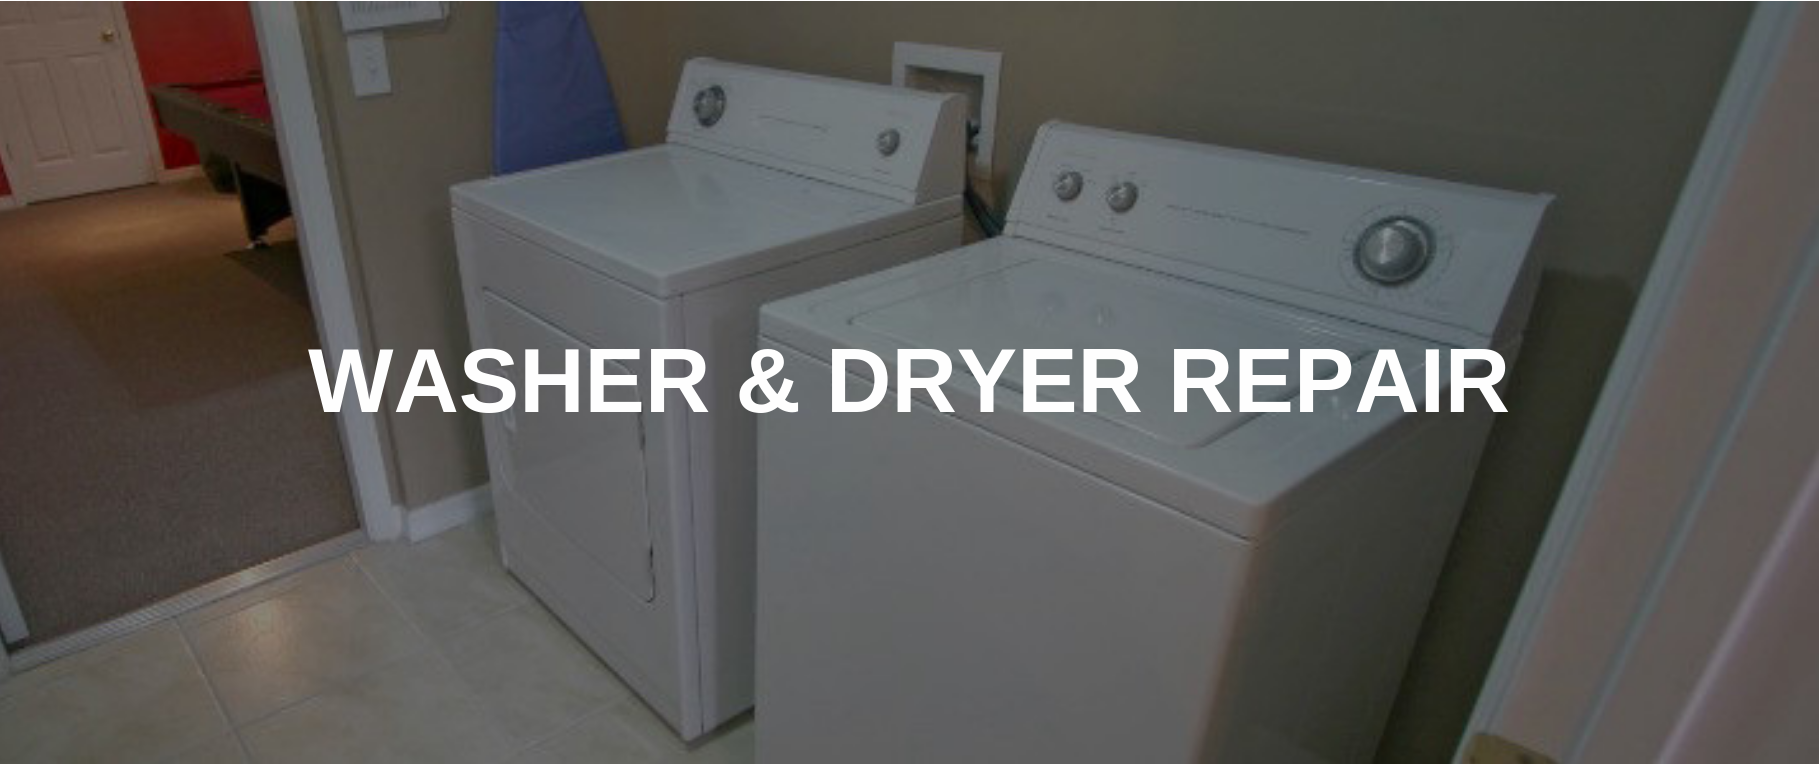 washing machine repair grand prairie